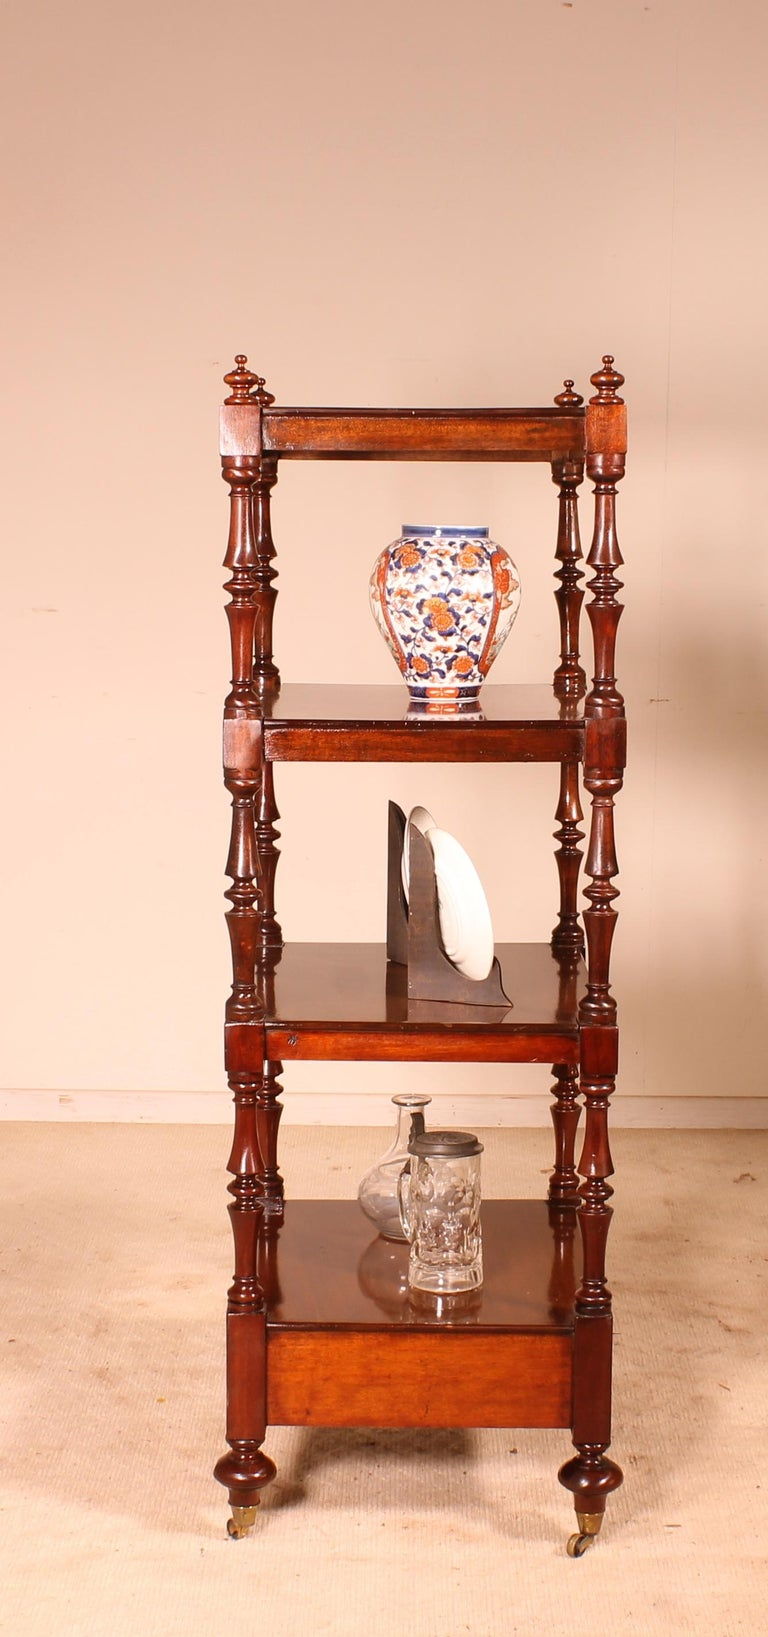 English Whatnot 19th Century in Mahogany In Good Condition For Sale In Brussels, Brussels